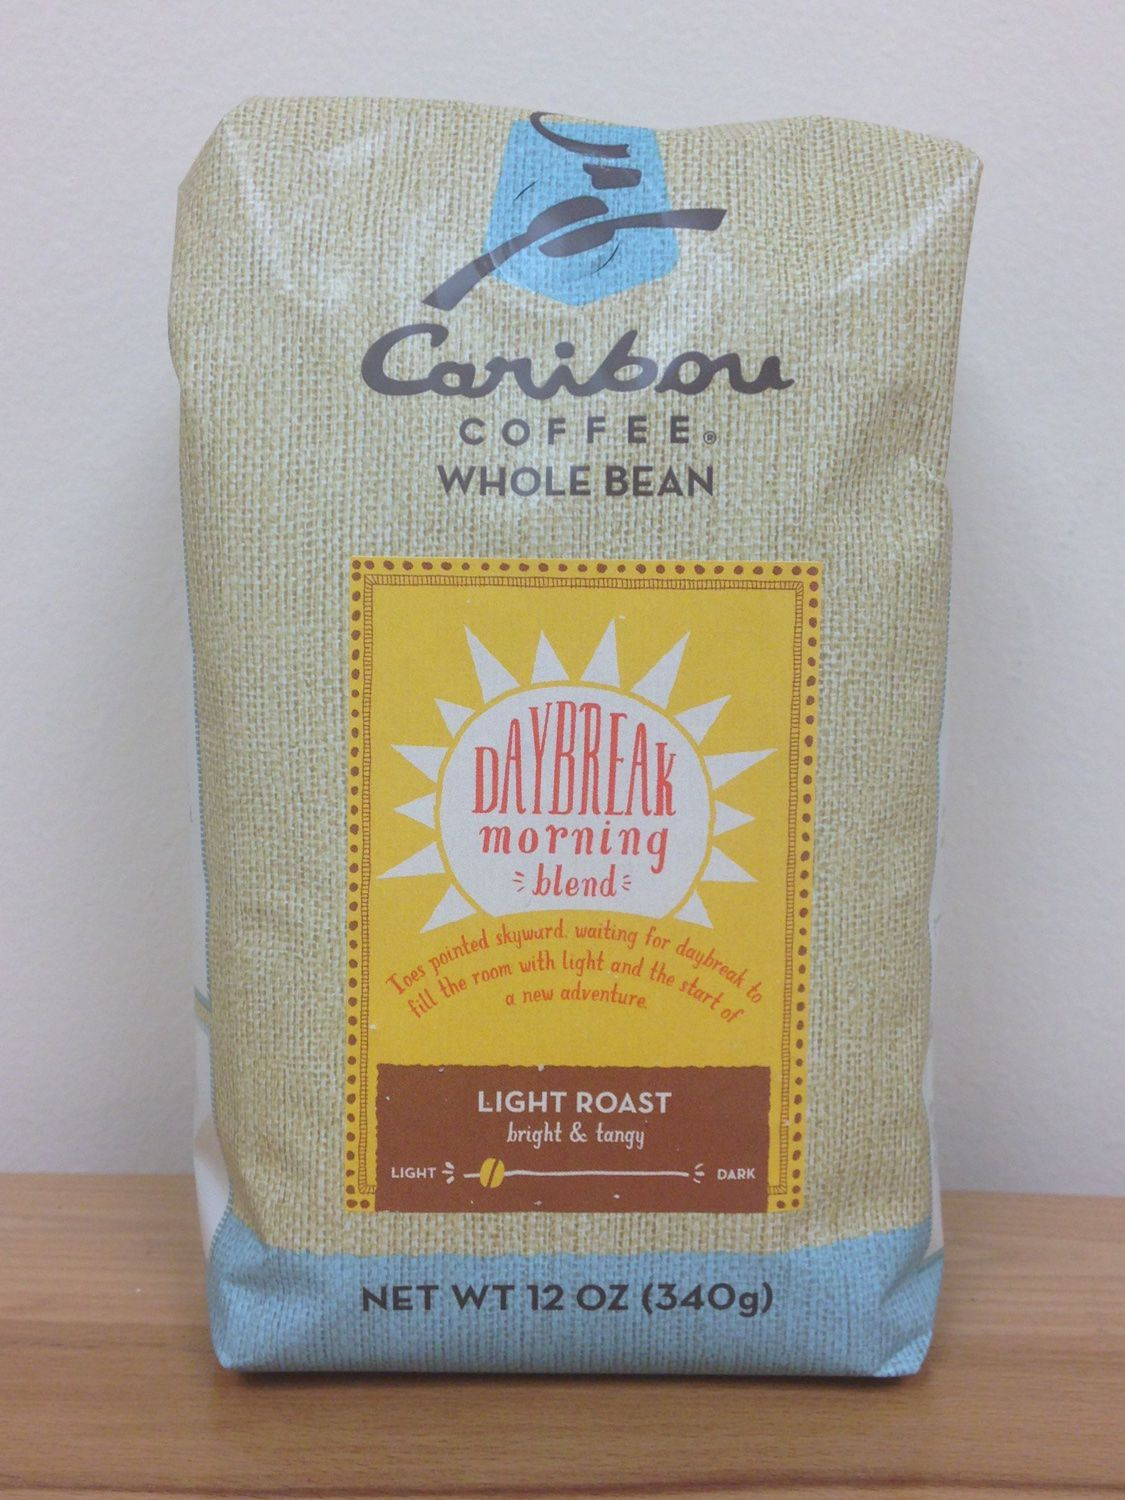 Daybreak Morning Blend from Caribou Coffee